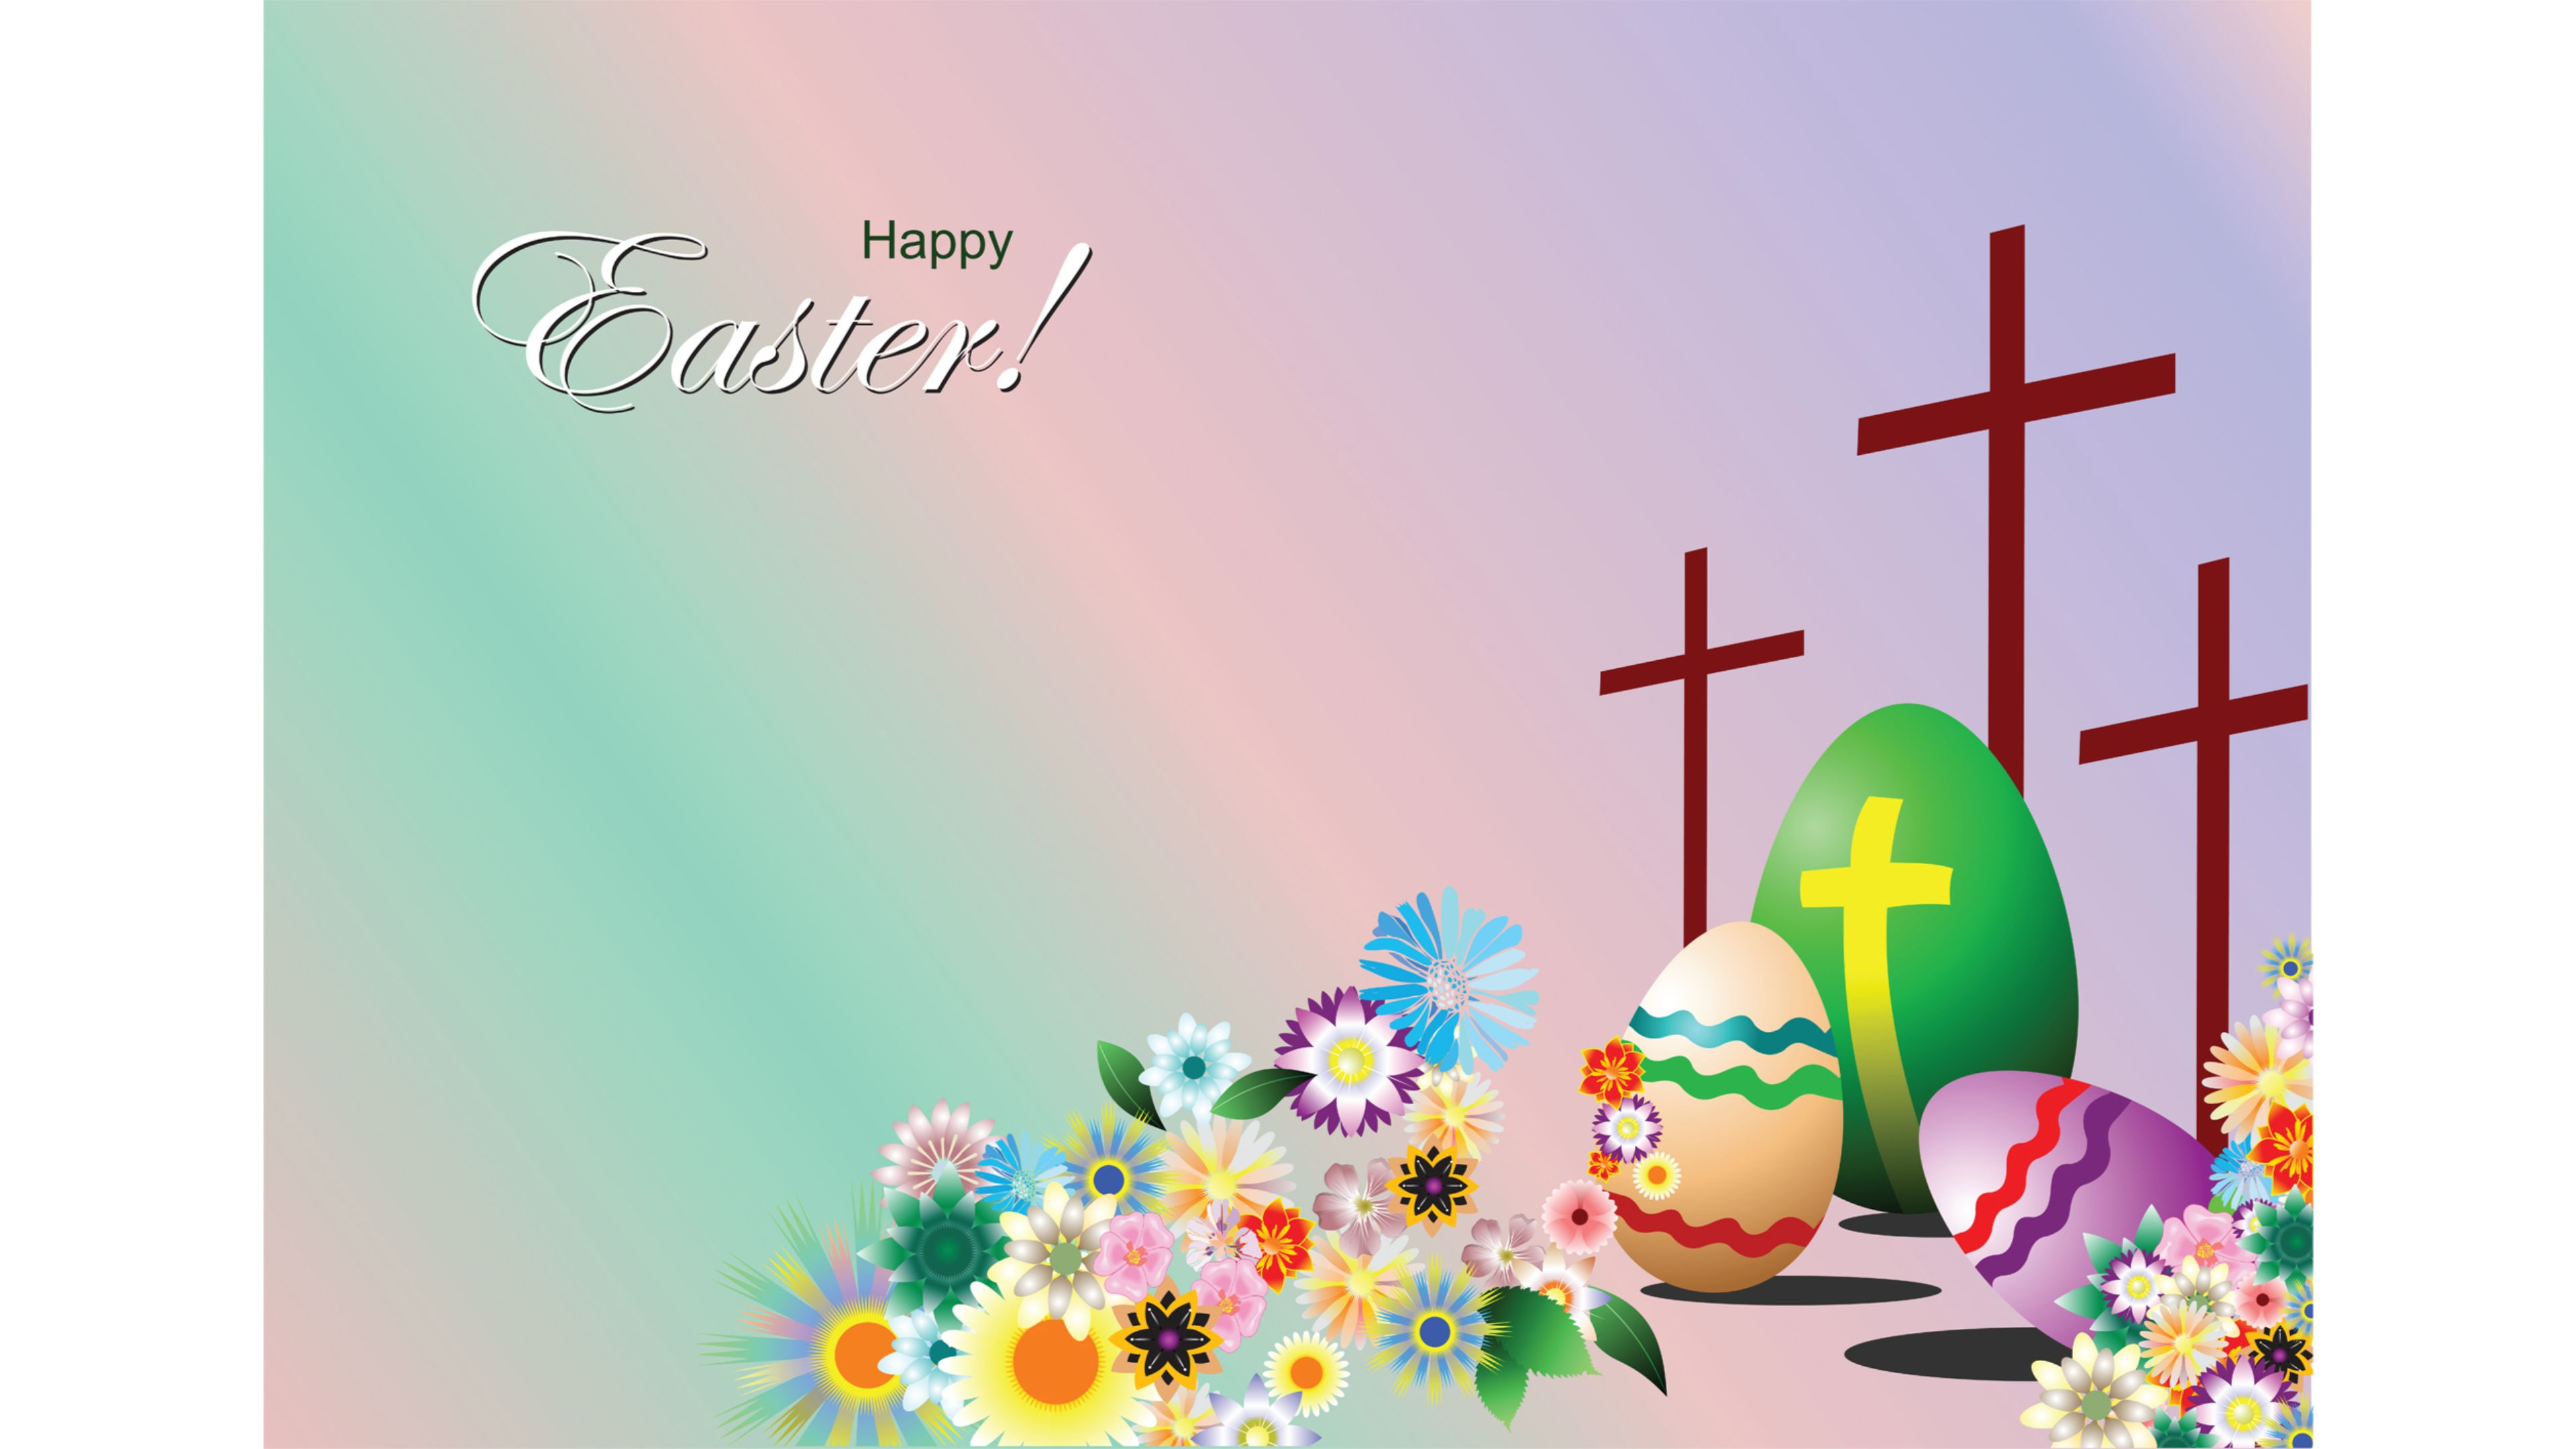 easter wallpaper backgrounds christian-#27